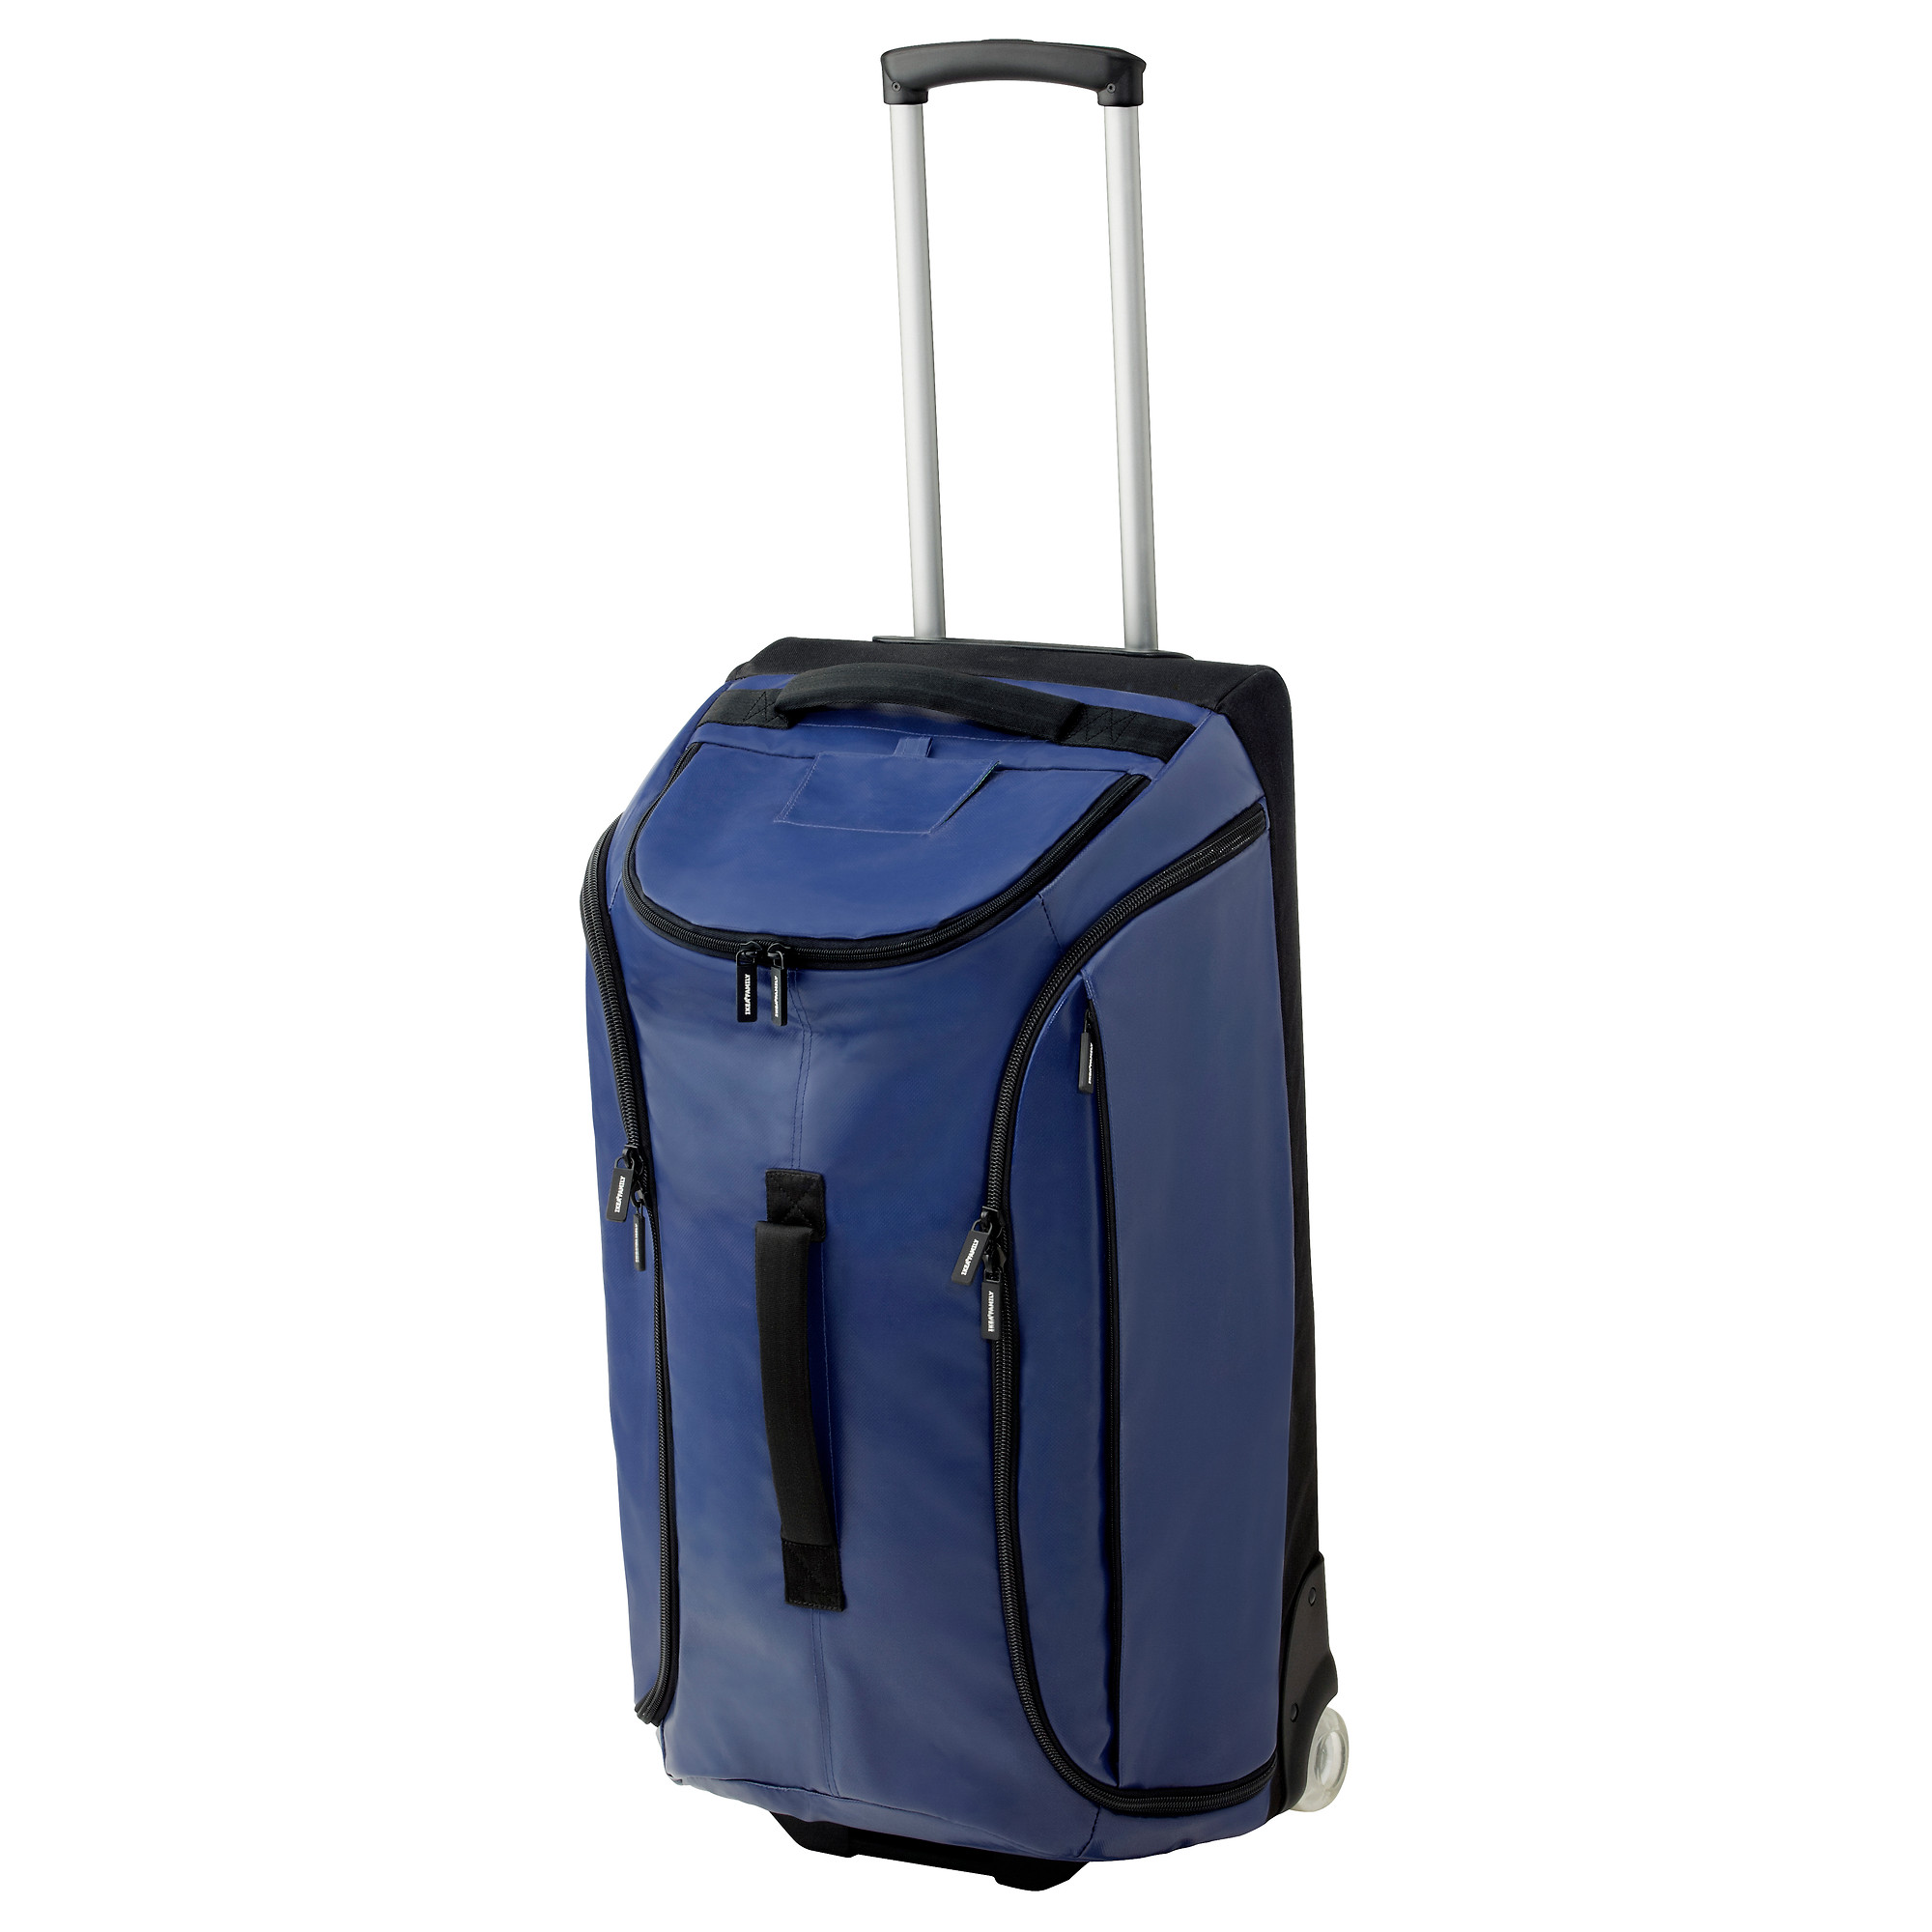 Backpacks, Luggage & Travel Accessories - IKEA